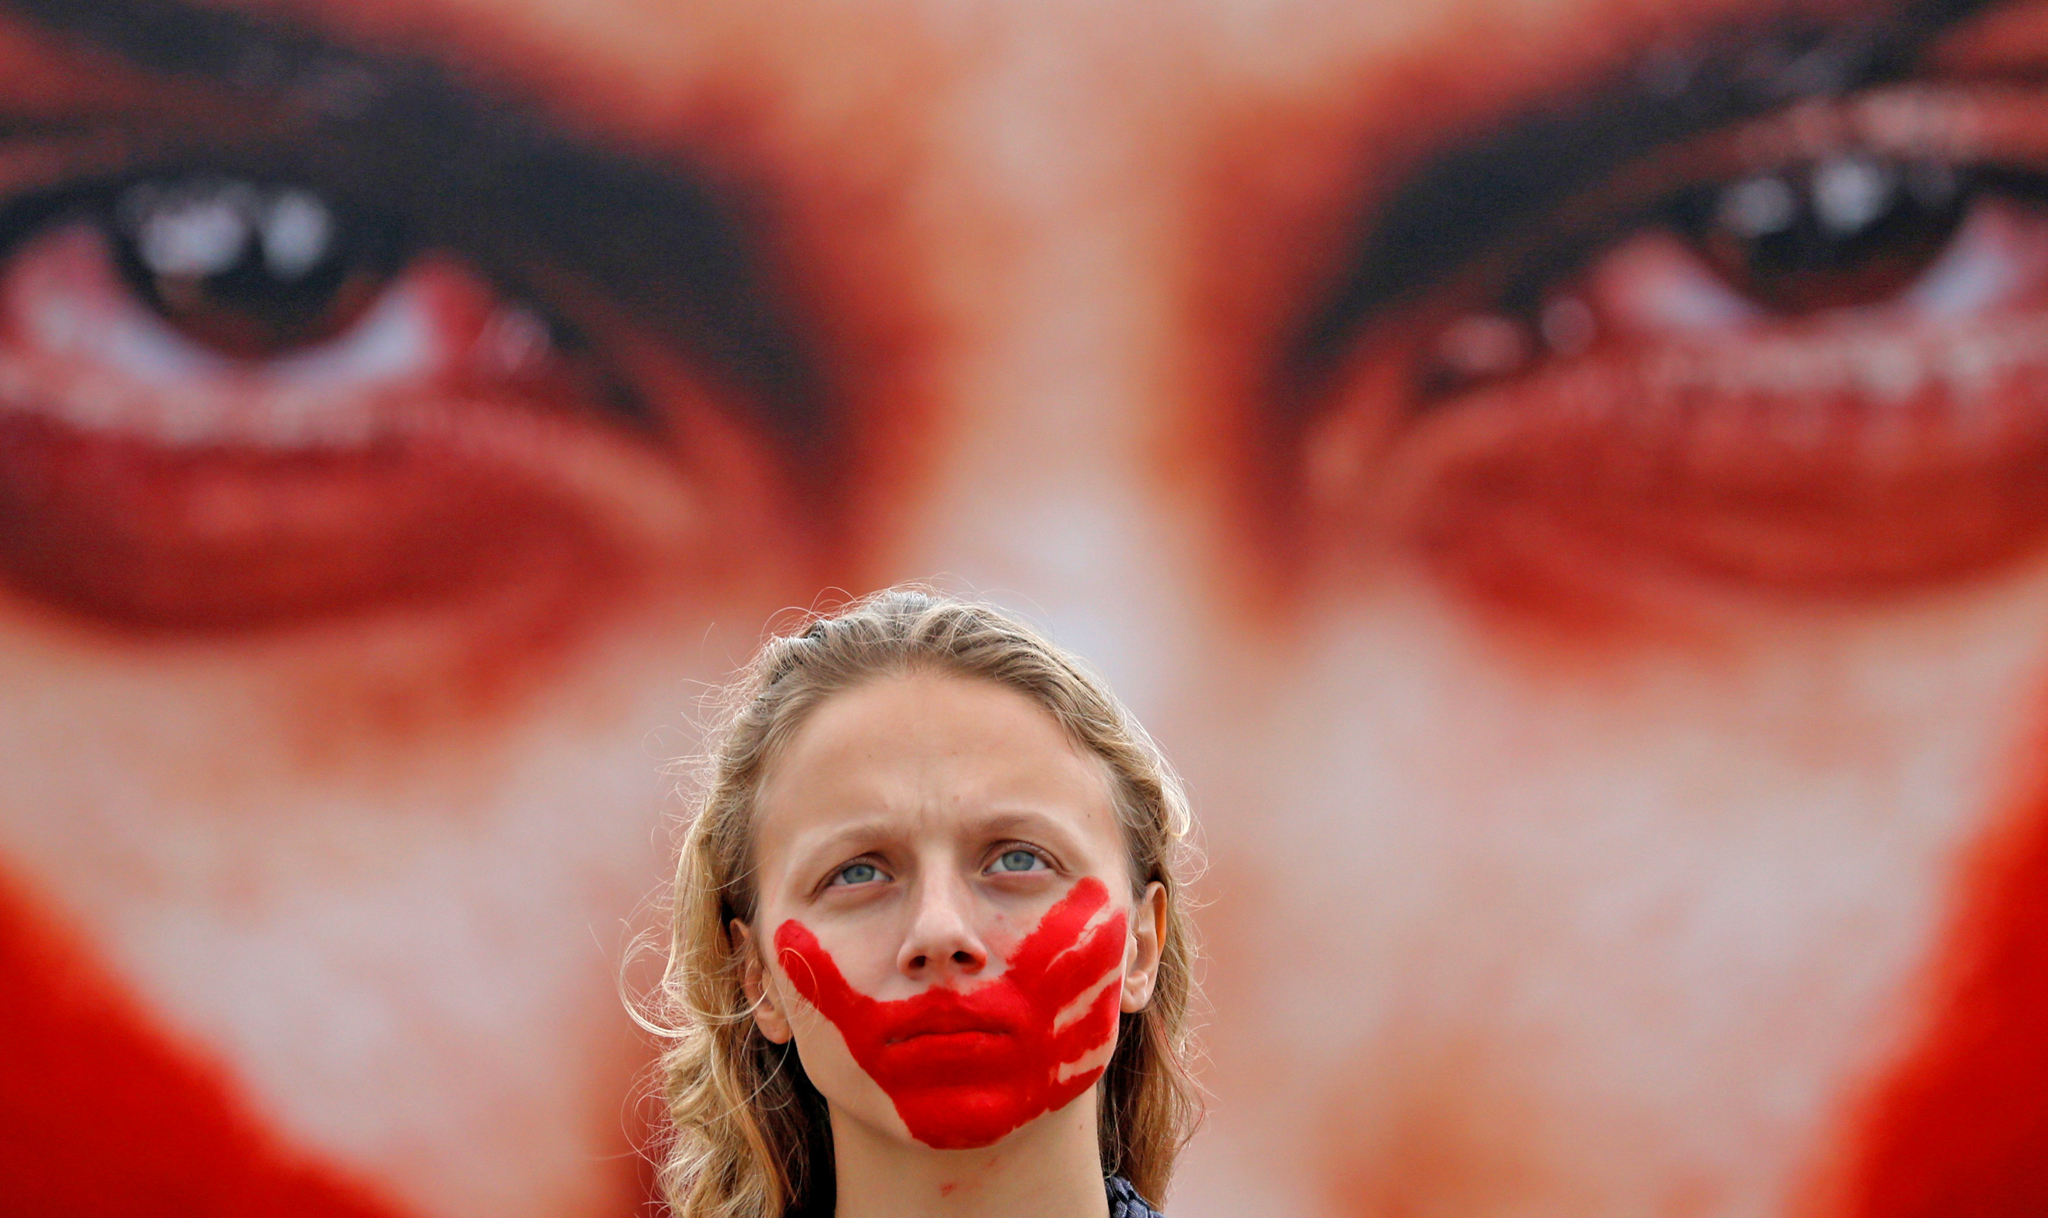 An activist poses for picture in front a photo from Brazilian photographer Marcio Freitas, during a protest by non-governmental organization (NGO) Rio de Paz (Rio of Peace) against rape and violence against women on Copacabana beach in Rio de Janeiro, Brazil, June 6, 2016.